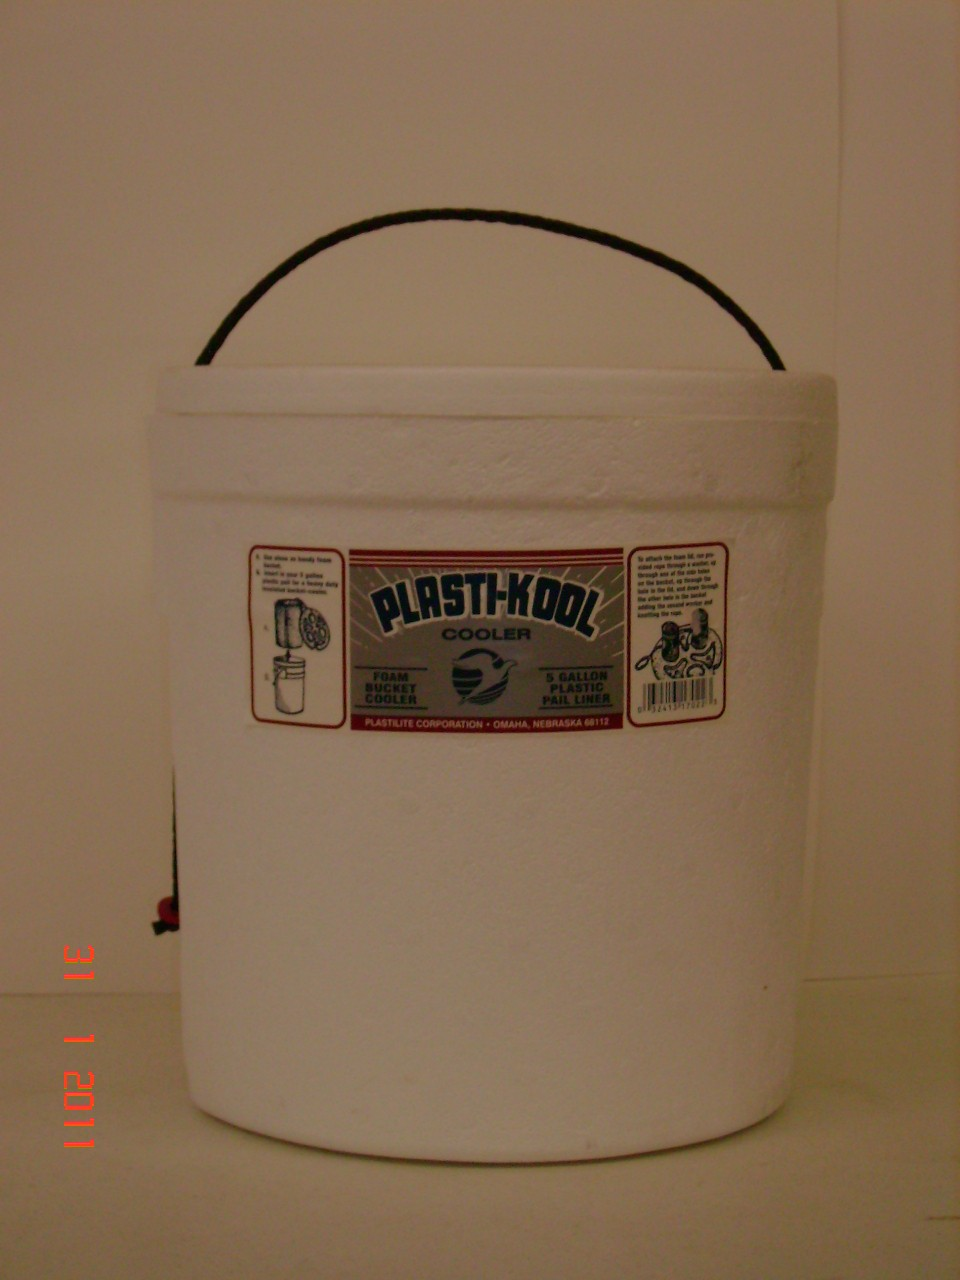 5-gal insulated pail liner